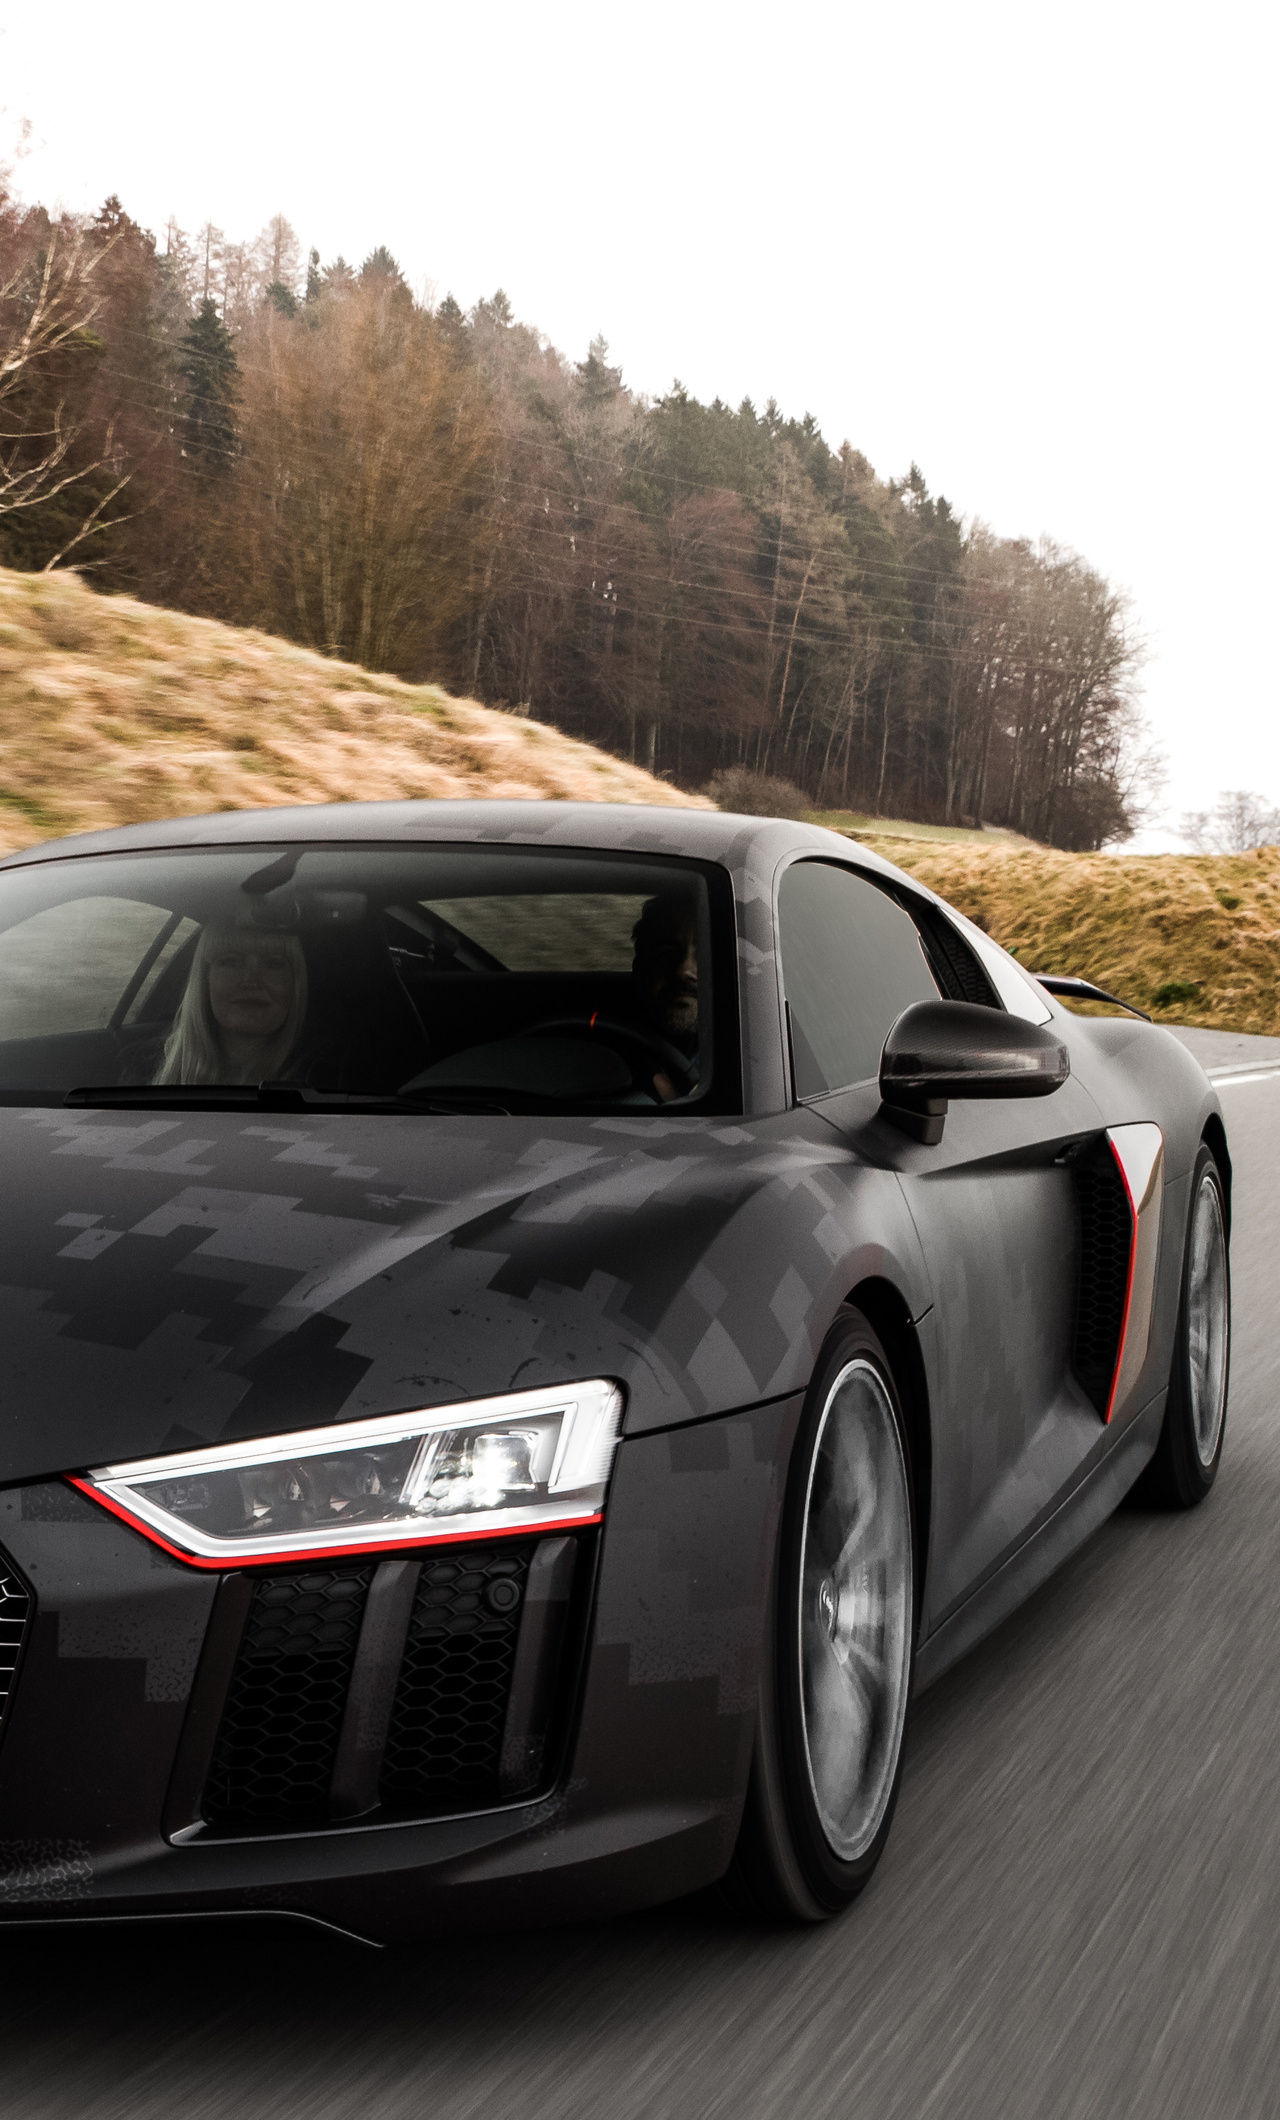 1280x2120 Black Audi R8 V10 Plus Iphone 6 Hd 4k Wallpapers Images Backgrounds Photos And Pictures